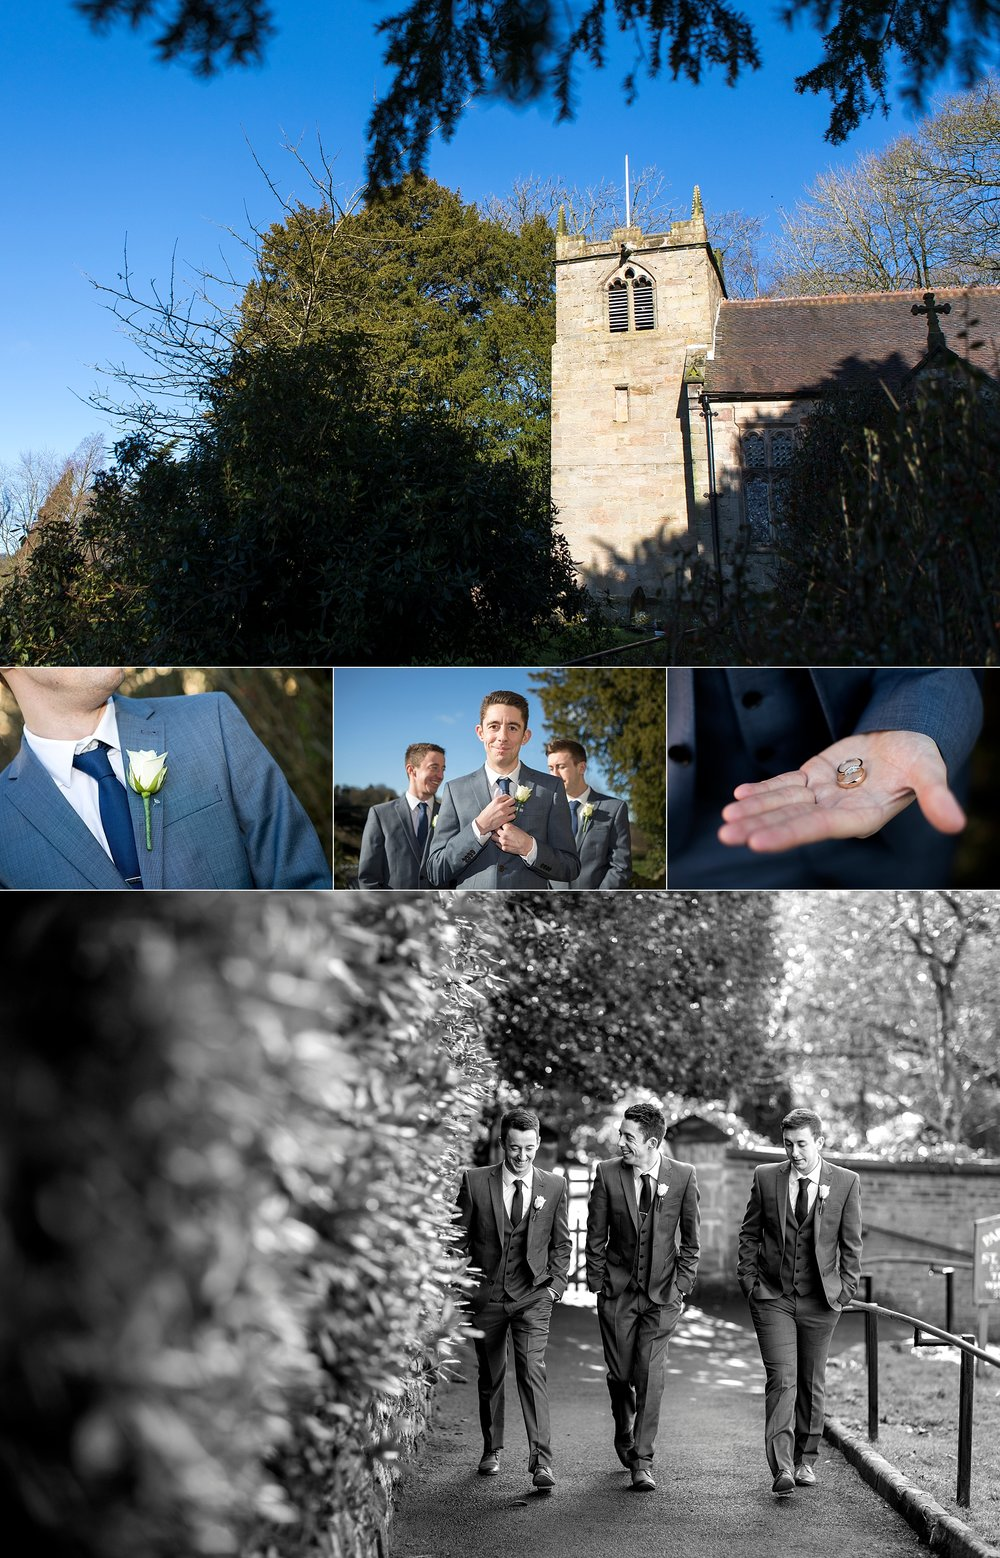 wedding slaters photographer stoke 1.jpg